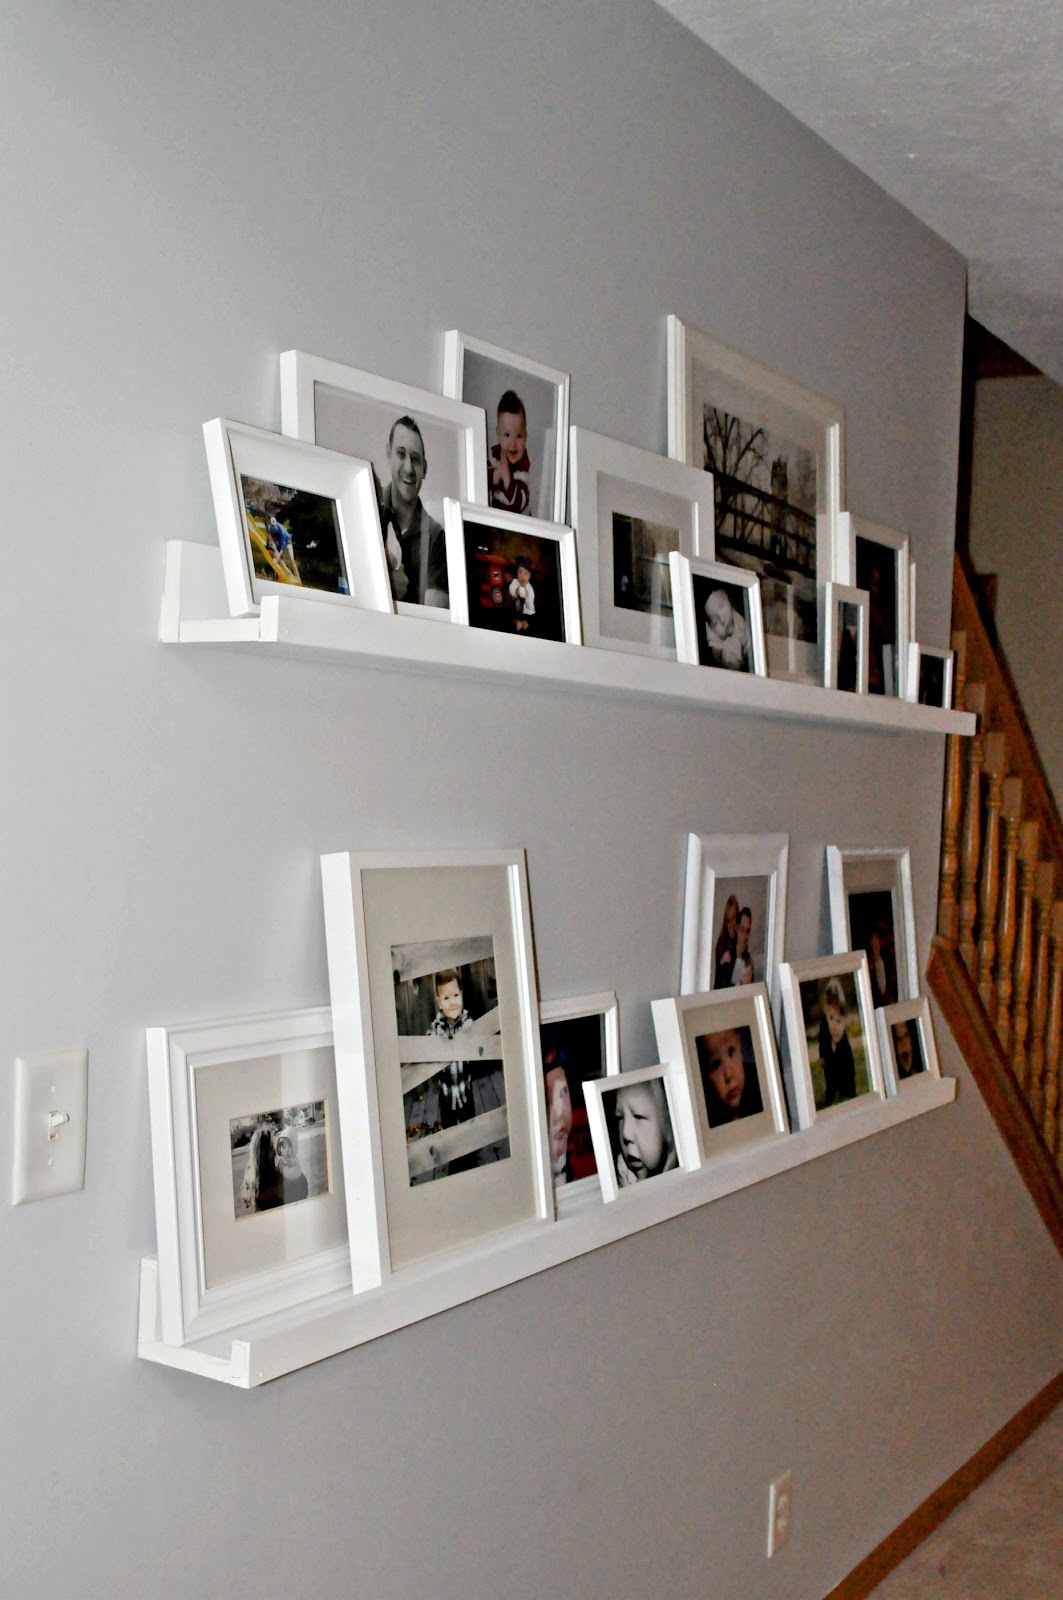 Pictures Of Wall Shelves Always Chasing Life Gallery Shelves Again